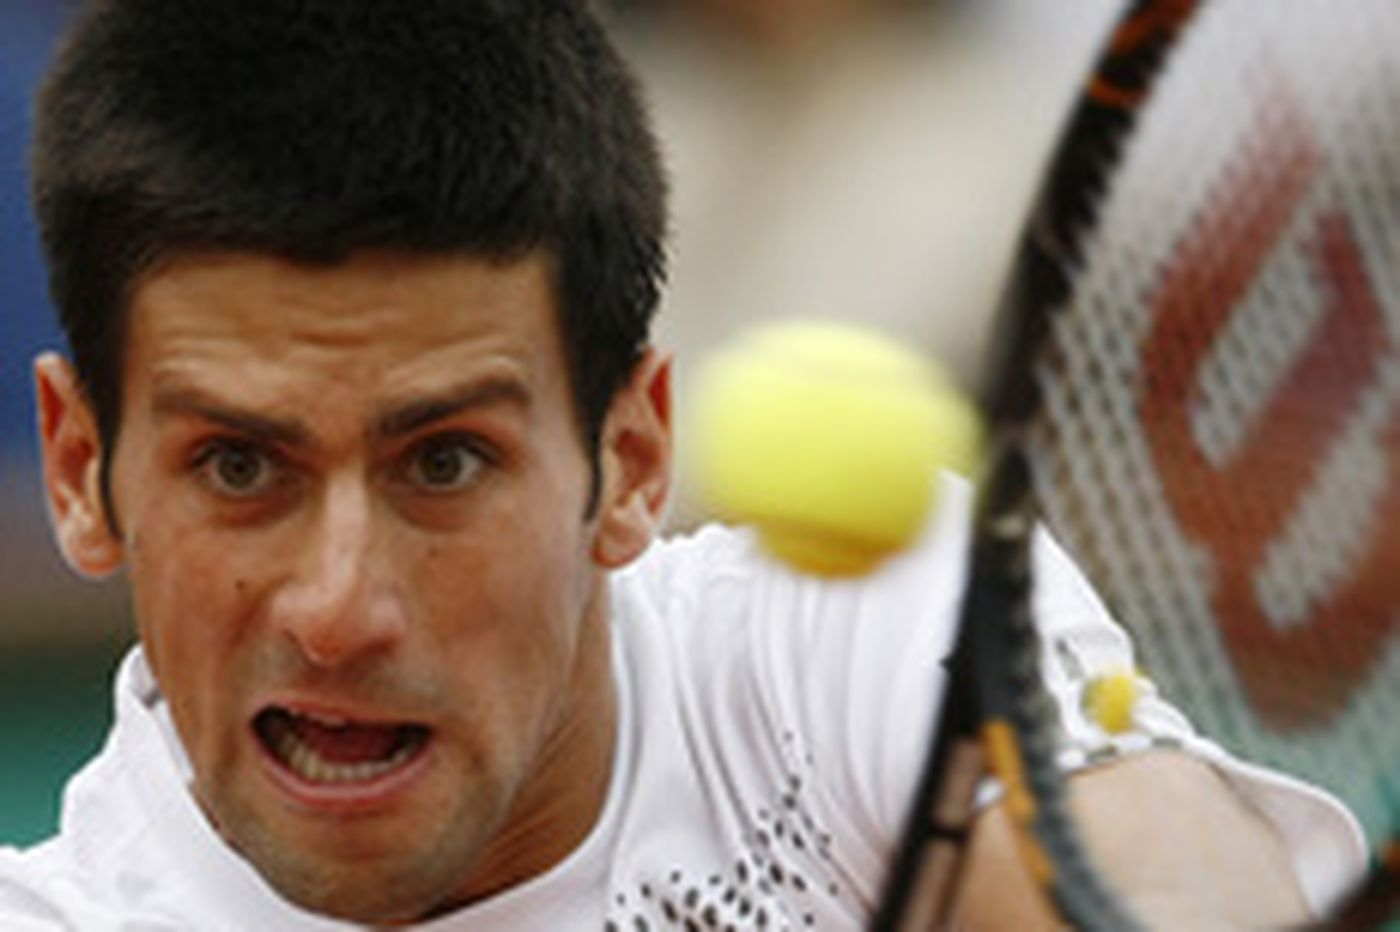 Djokovic wins, faces Gulbis next in French Open